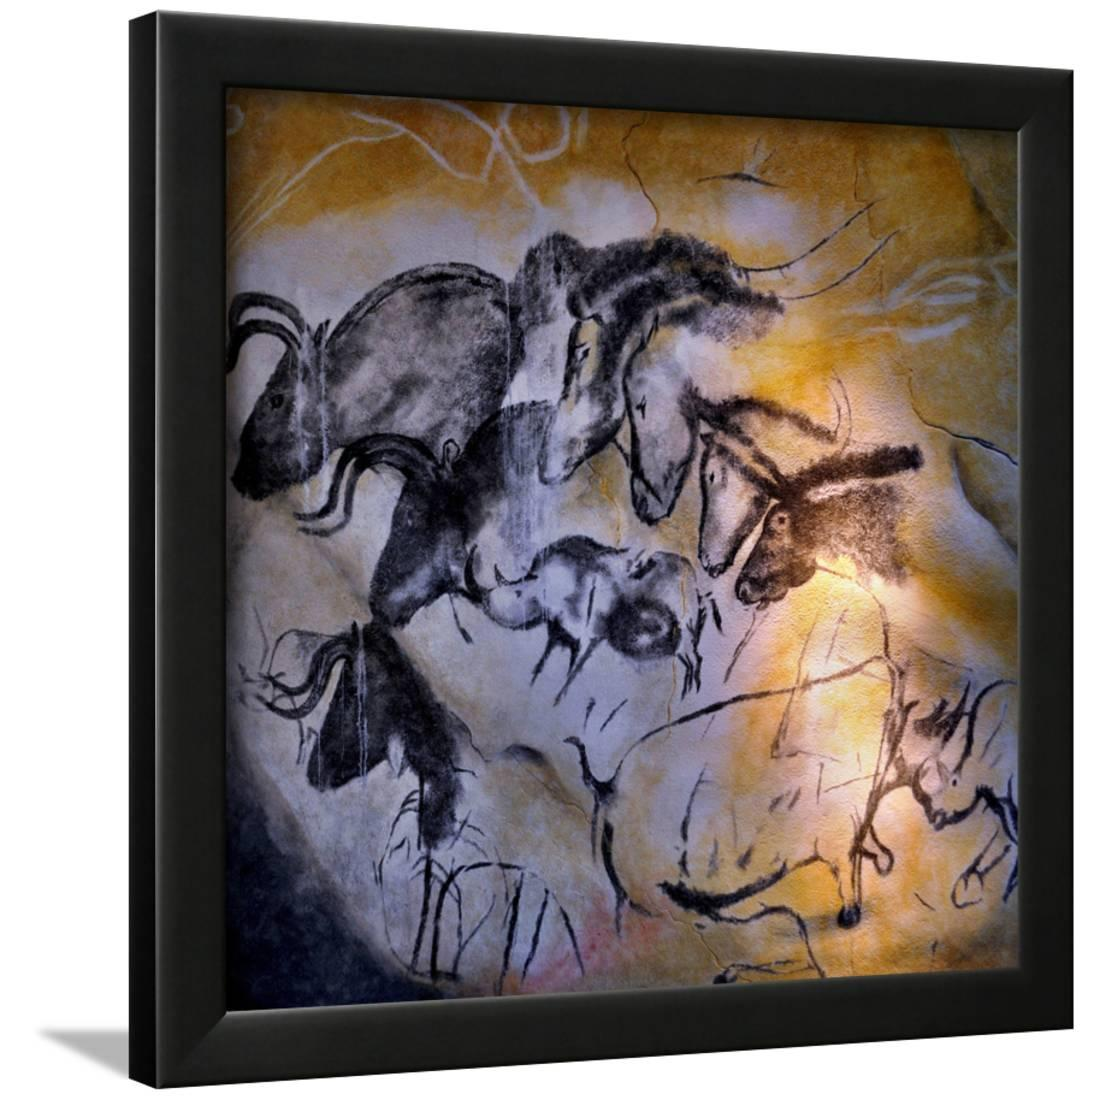 Painting in the Chauvet Cave, 32,000-30,000 Bc Framed Print Wall Artwork by Art.com